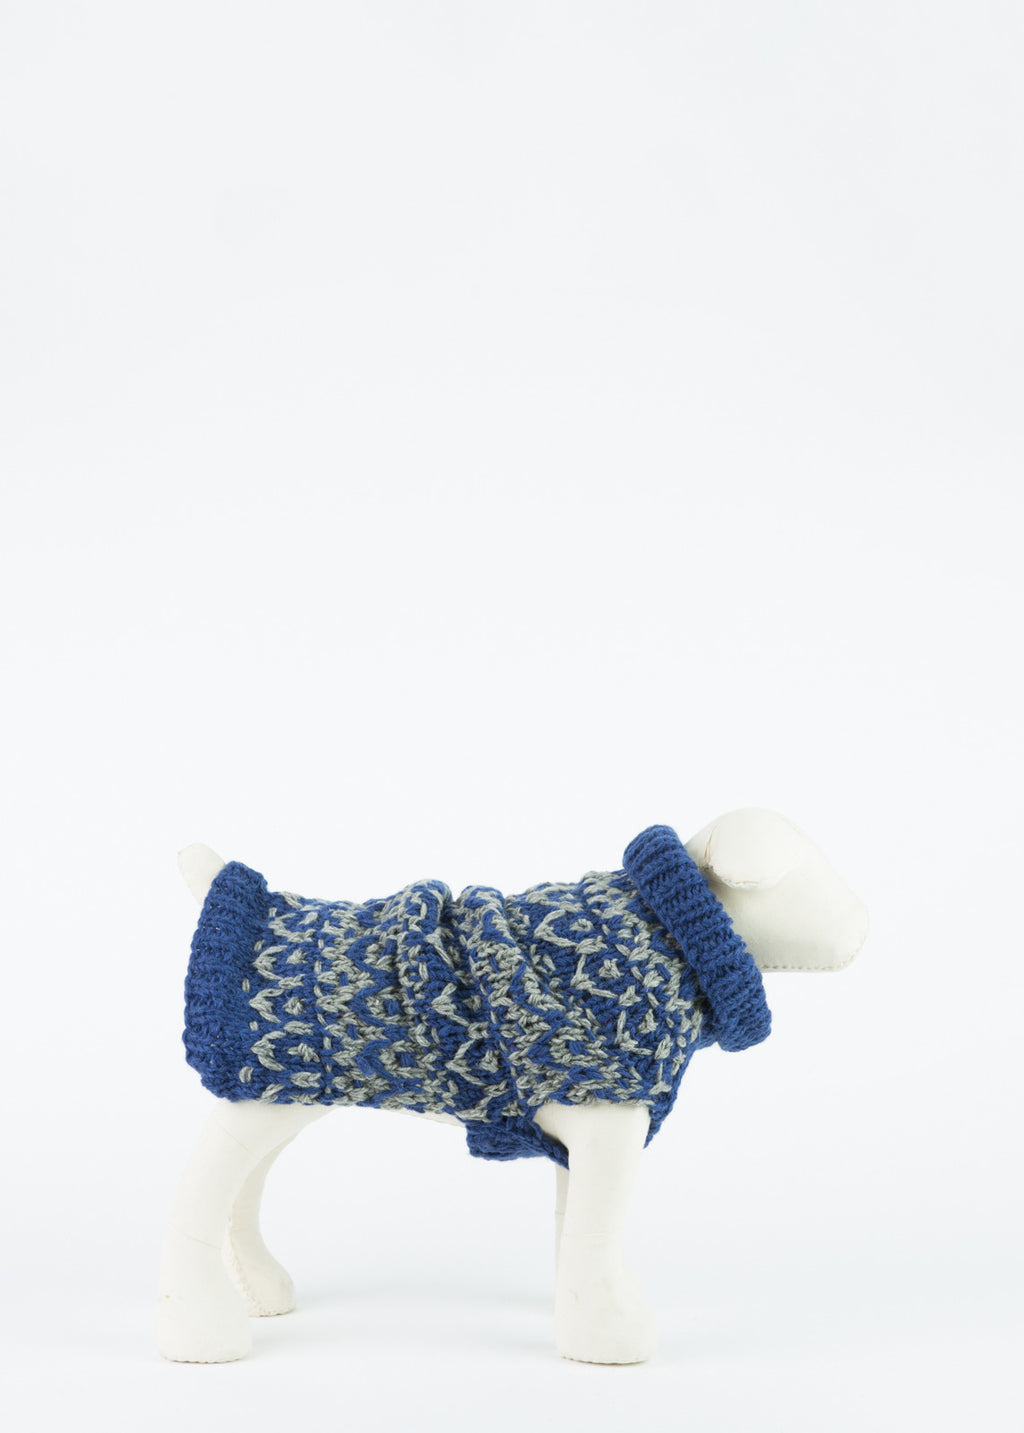 Ware of the Dog Hand Knit Textured Dog Pullover